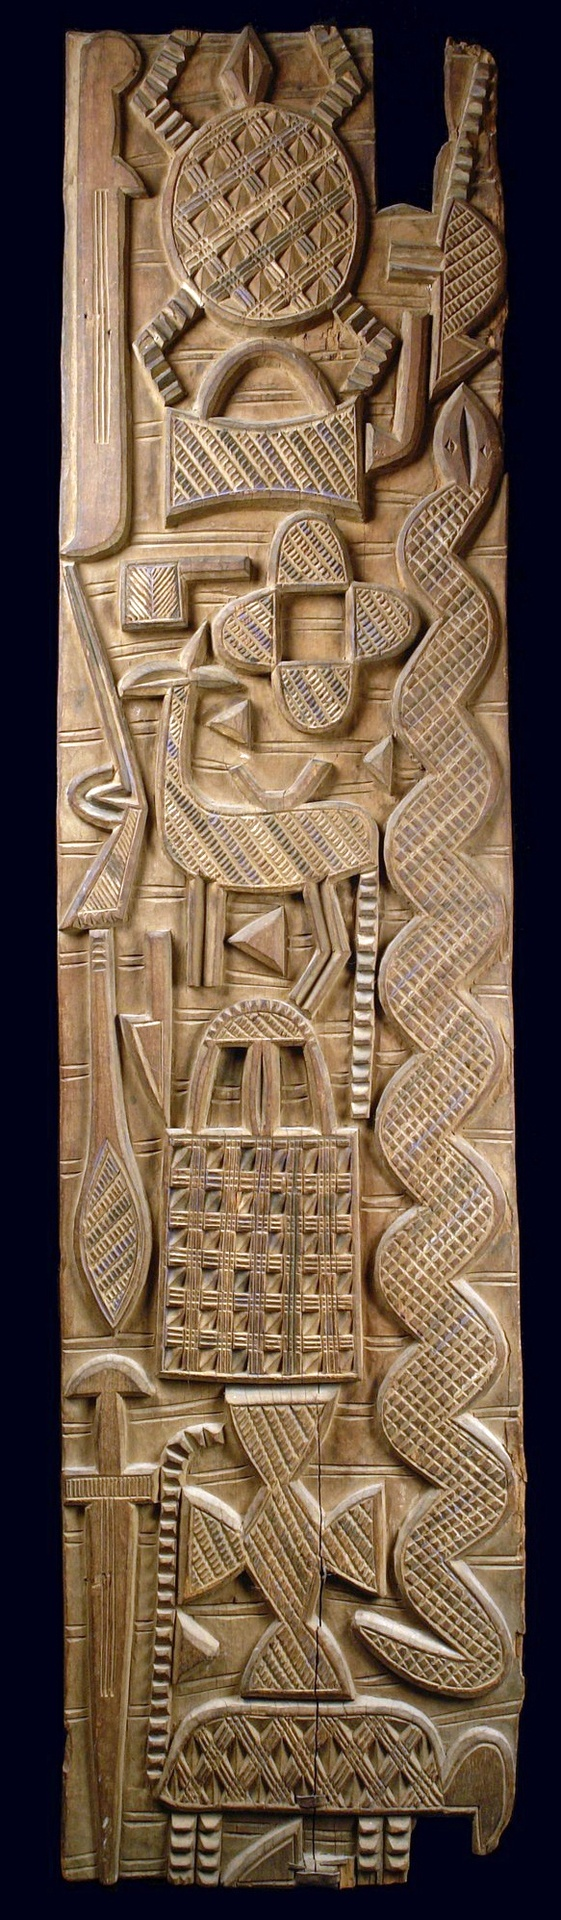 Africa door panel from the nupe people of nigeria wood with a